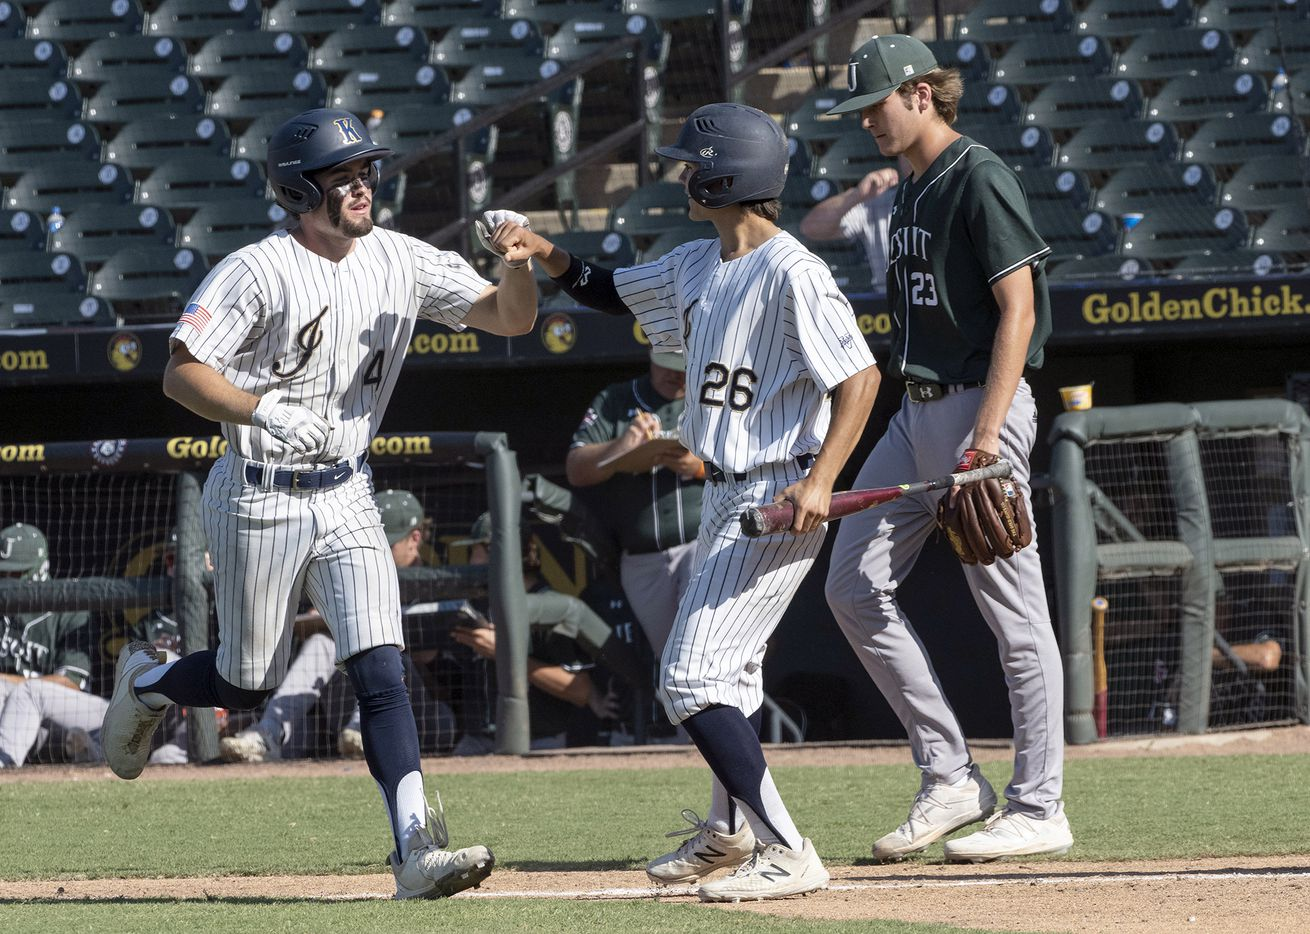 Keller Aidan Connors, (4), left, celebrates with base runner, Colten Vargas, (26), after a sacrifice out as Houston Strake Jesuit pitcher, Carson Brown, (23), looks on during the fourth inning of the 2021 UIL 6A state baseball semifinals held, Friday, June 11, 2021, in Round Rock, Texas.  Keller defeated Strake Jesuit 7-1.  (Rodolfo Gonzalez/Special Contributor)